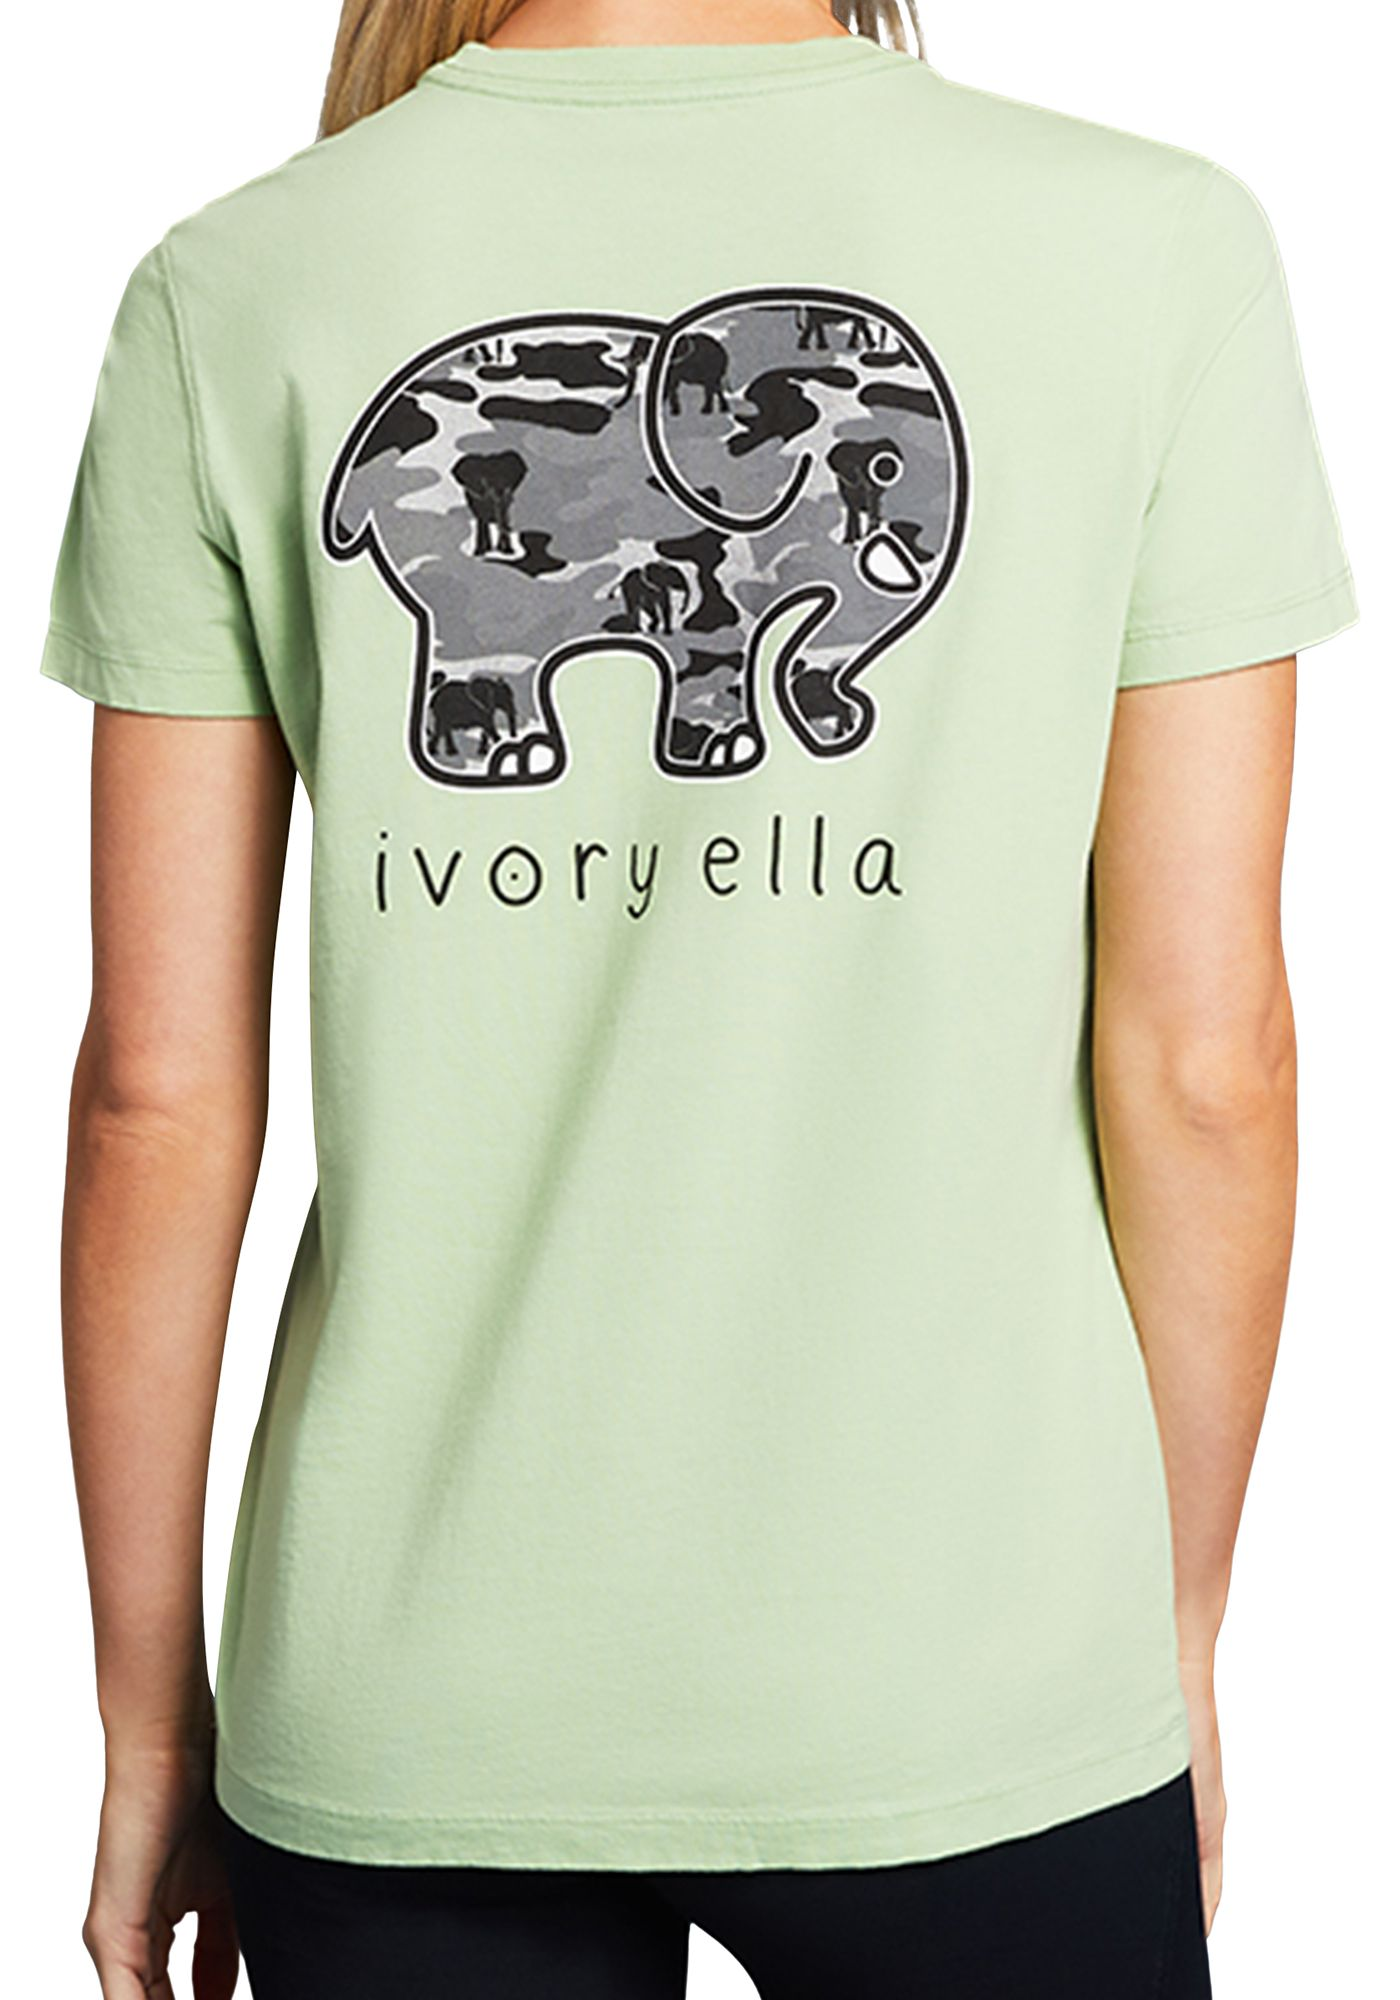 Ivory Ella Women's Camo Short Sleeve T-Shirt